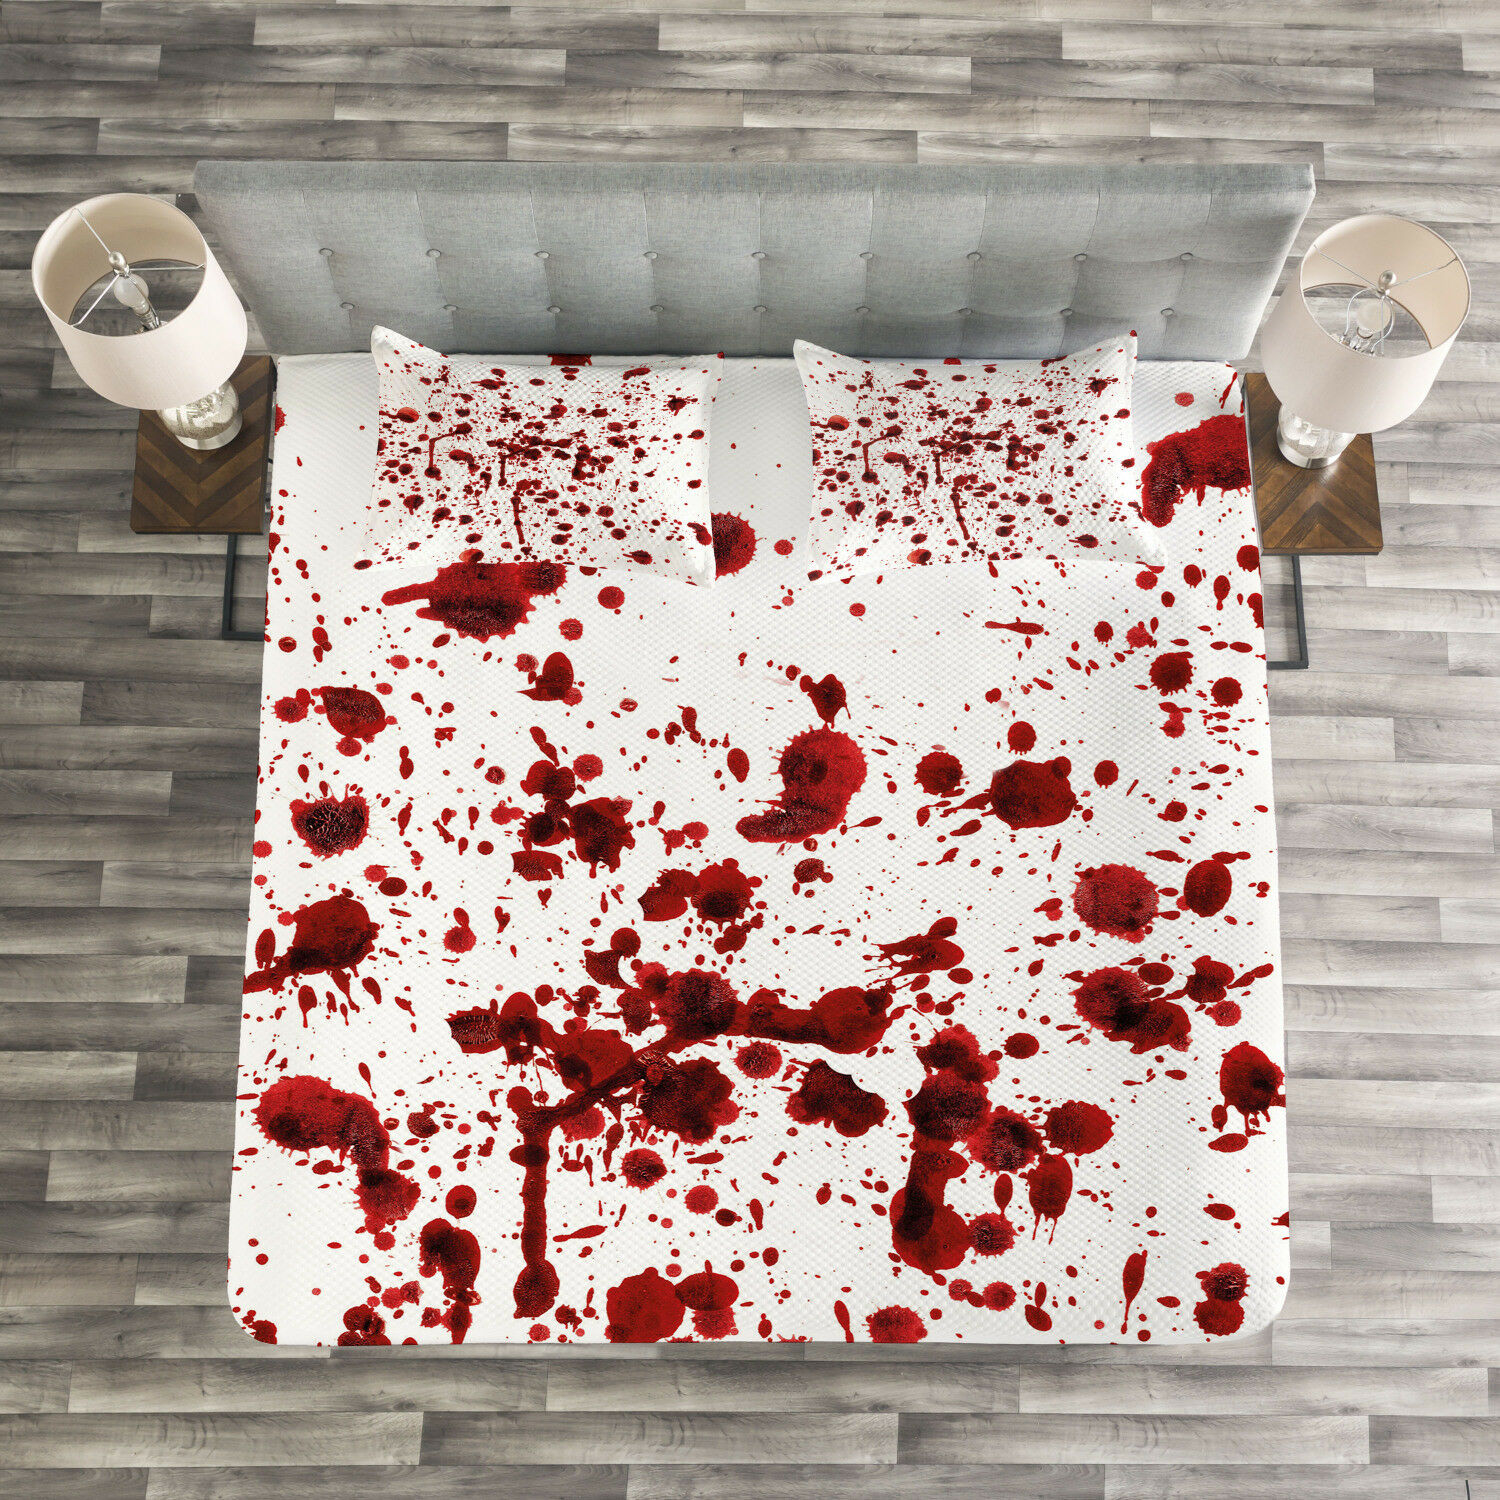 Bloody Quilted Bedspread & Pillow Shams Set, Splashes of Blood Scary Print